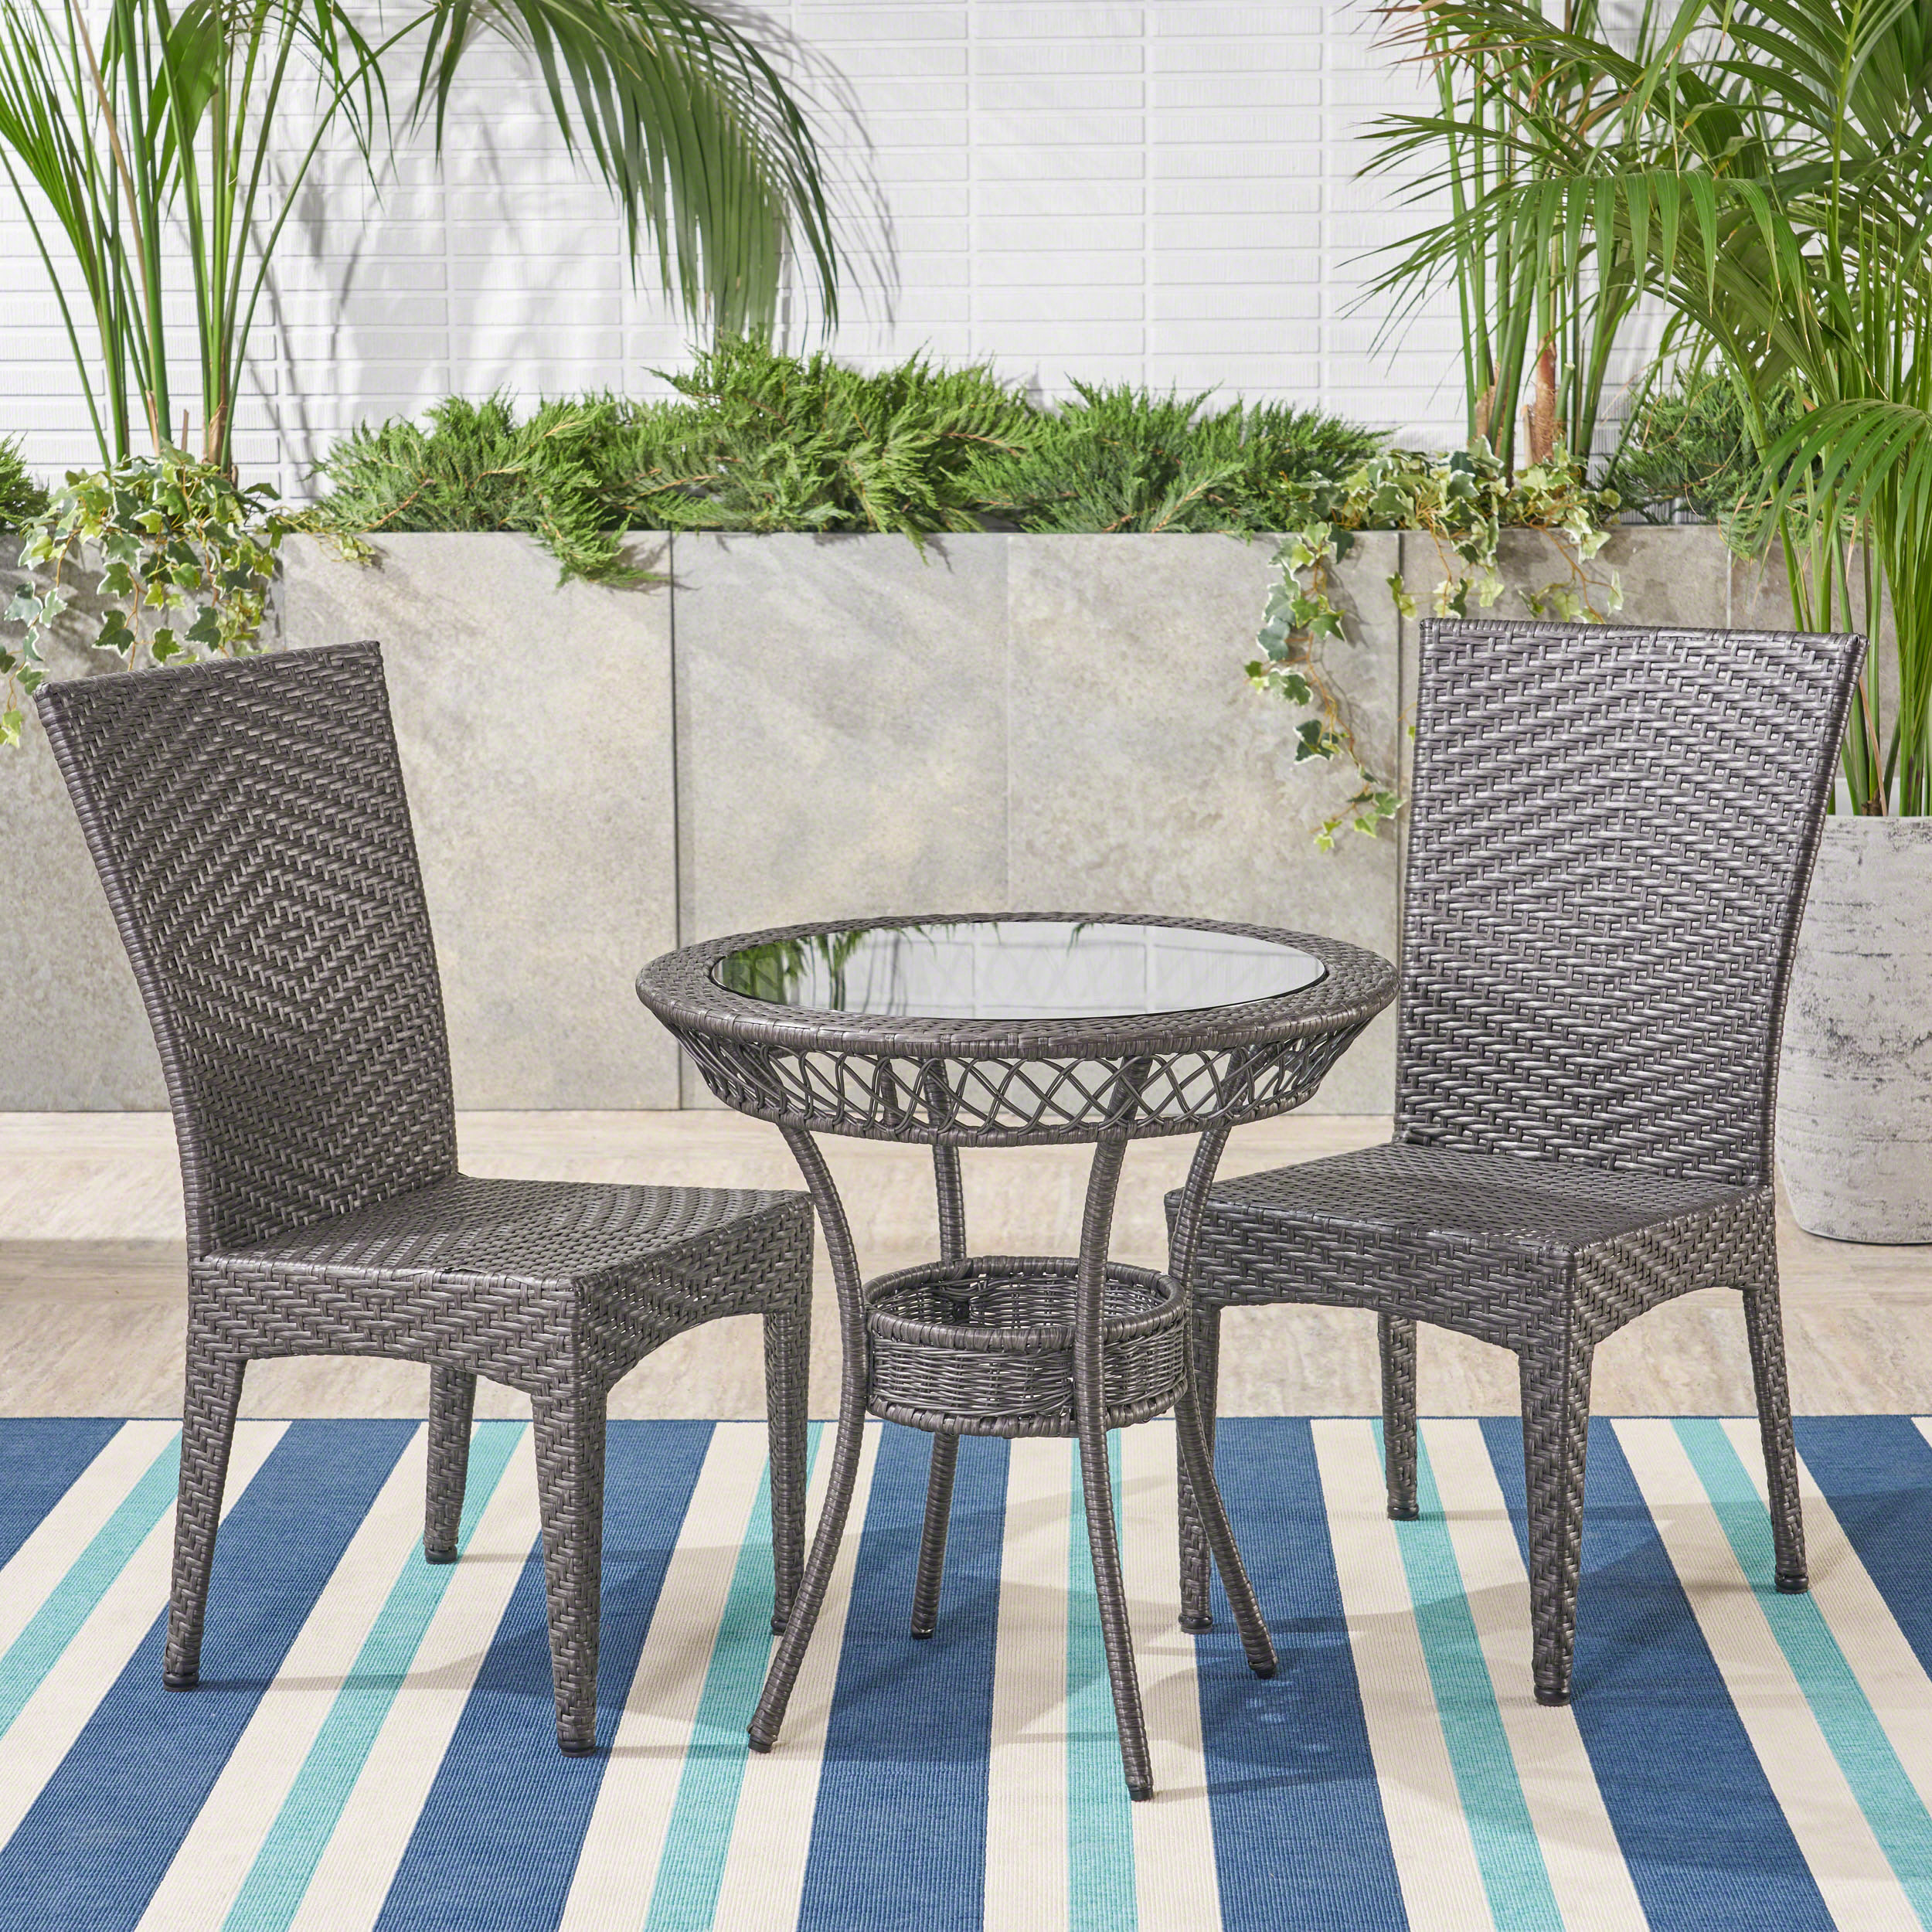 Outdoor 3 Piece Wicker Bistro Set, Grey